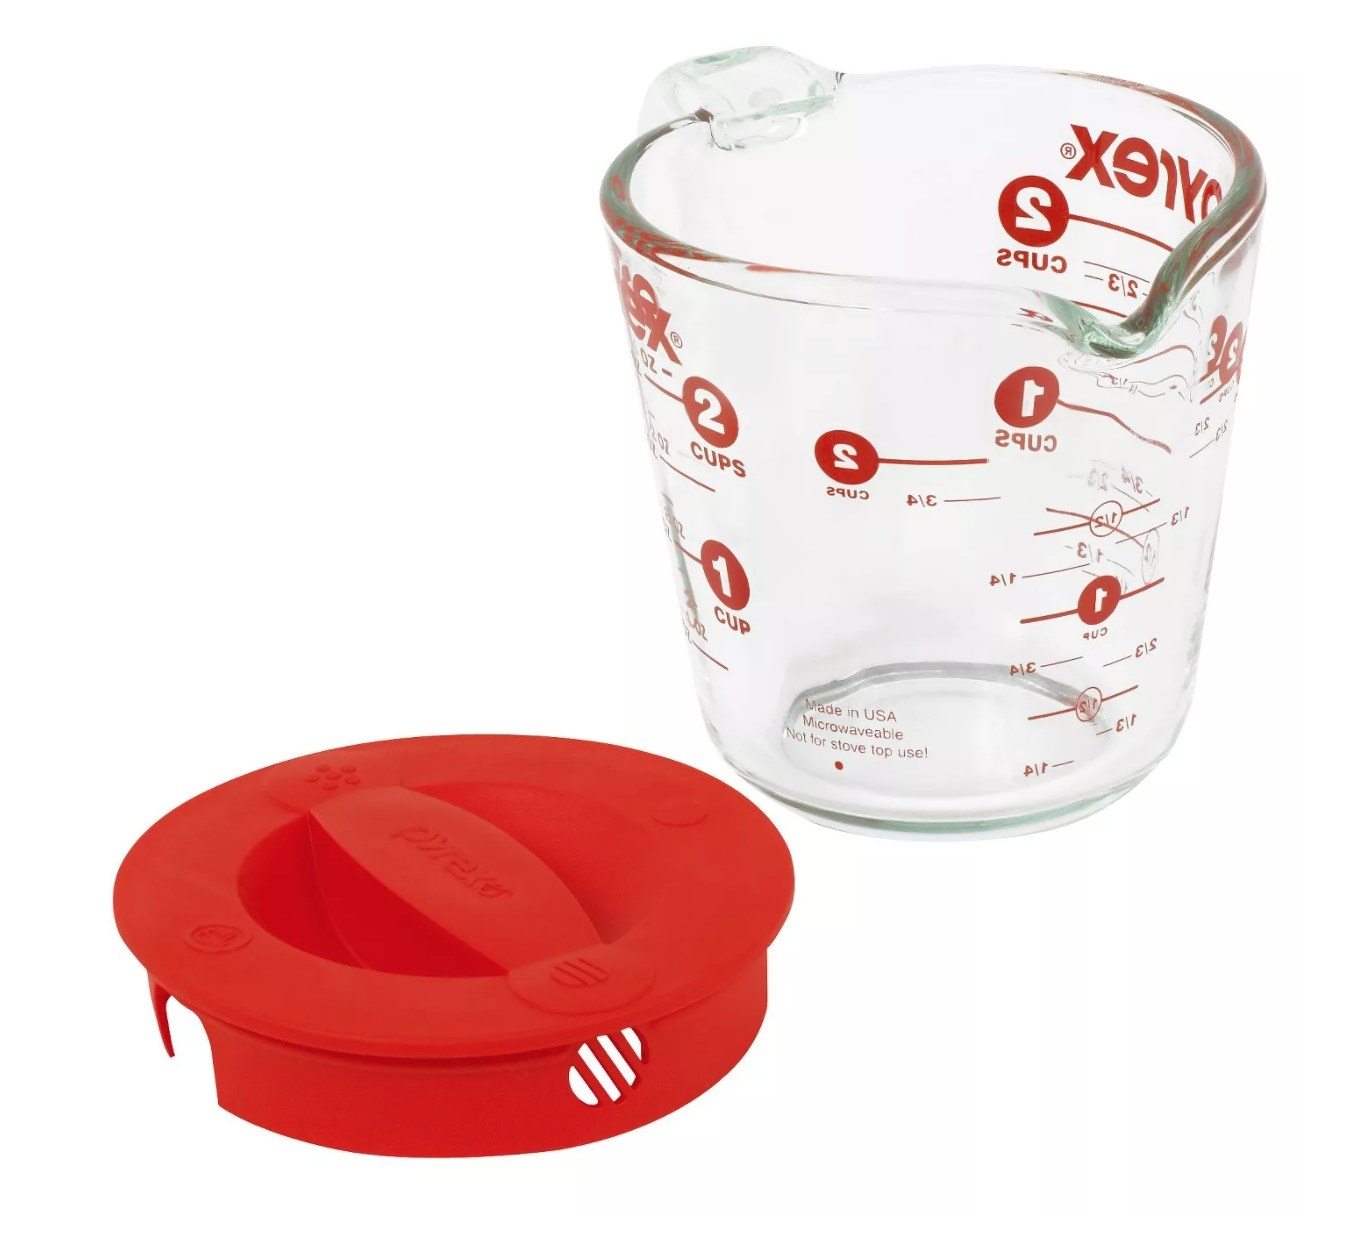 The measuring cup with a red lid